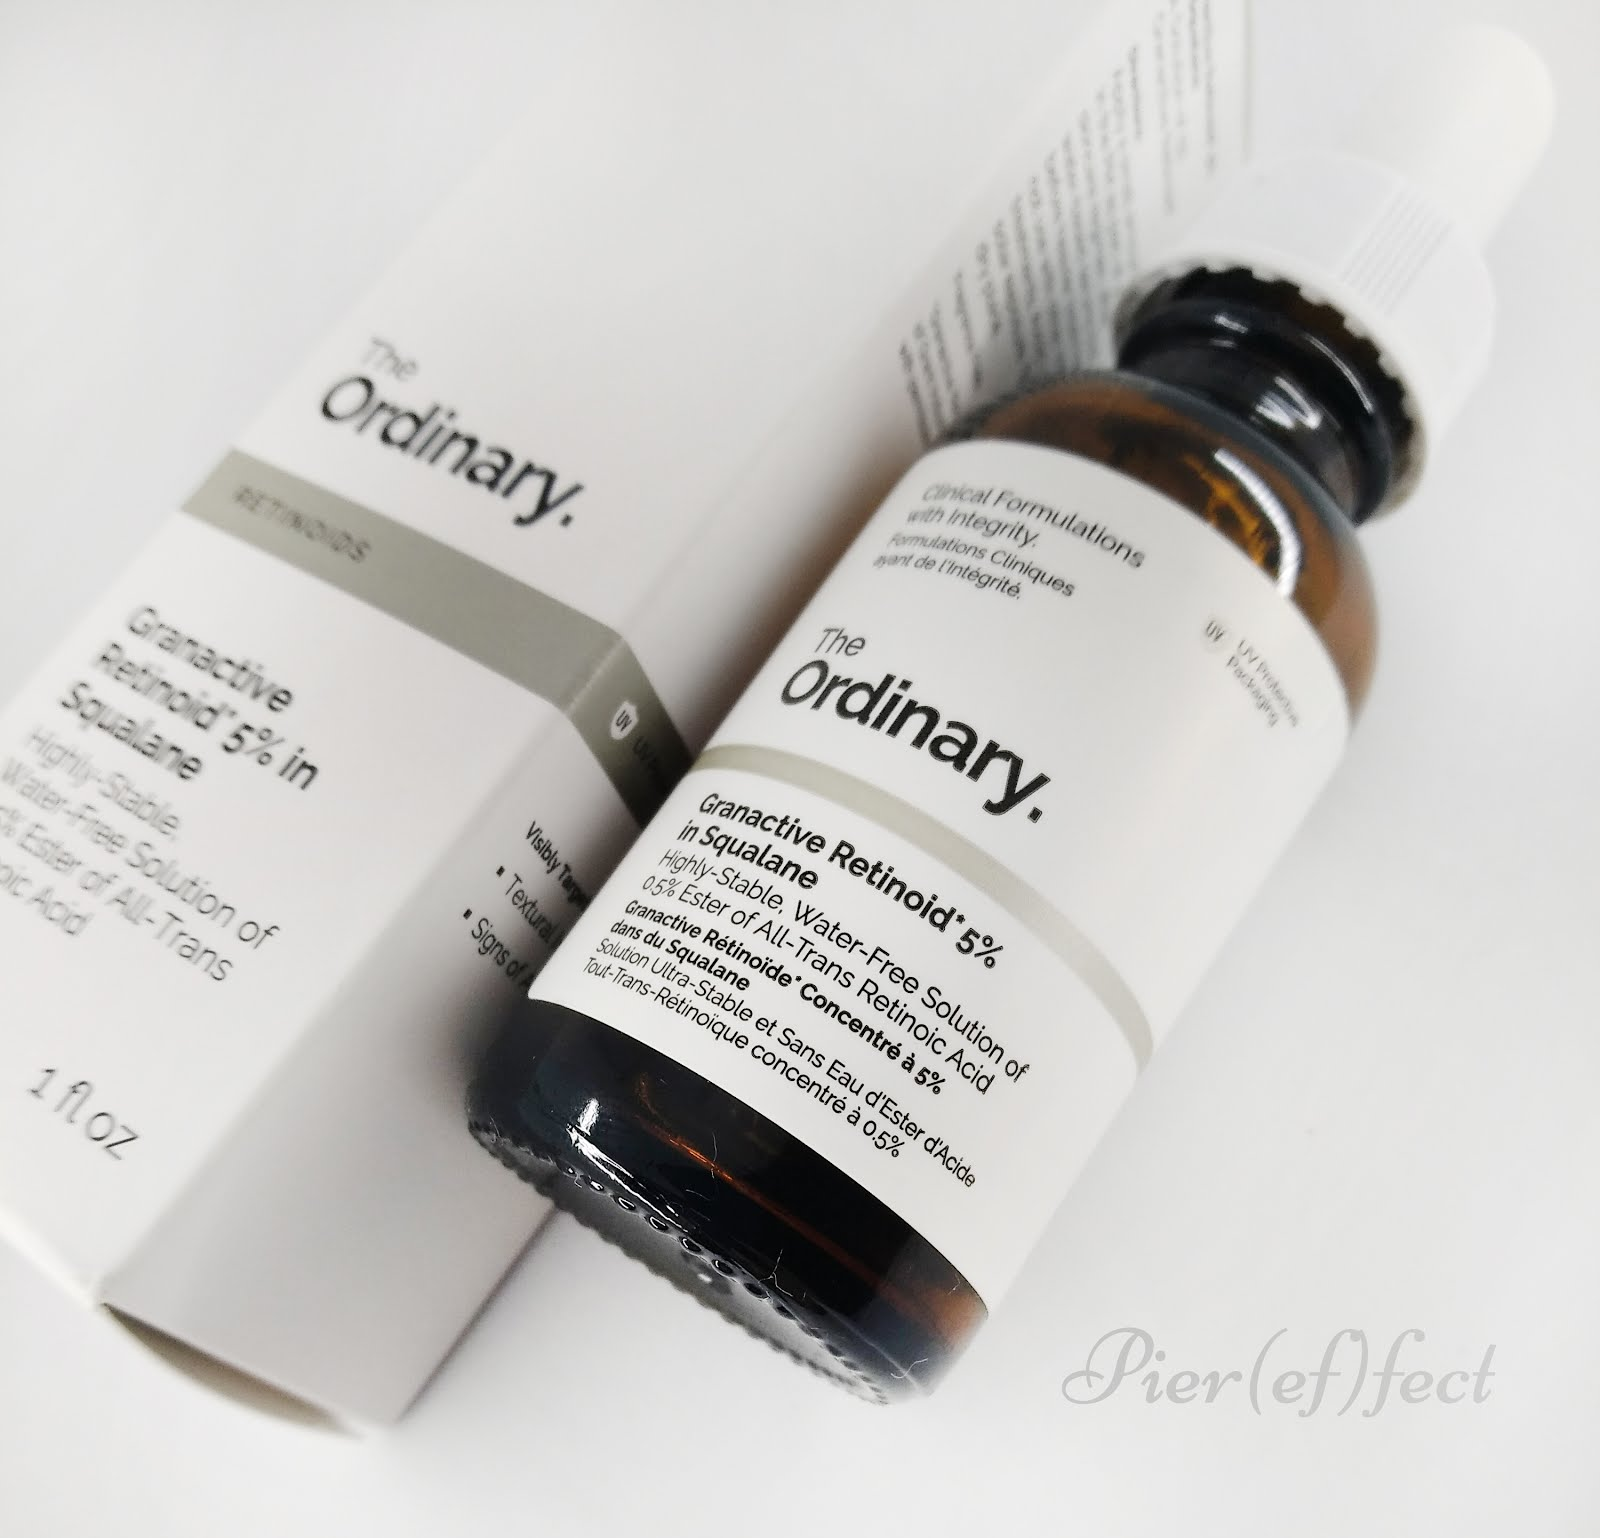 Deciem The Ordinary Granactive Retinoid 5% in Squalane